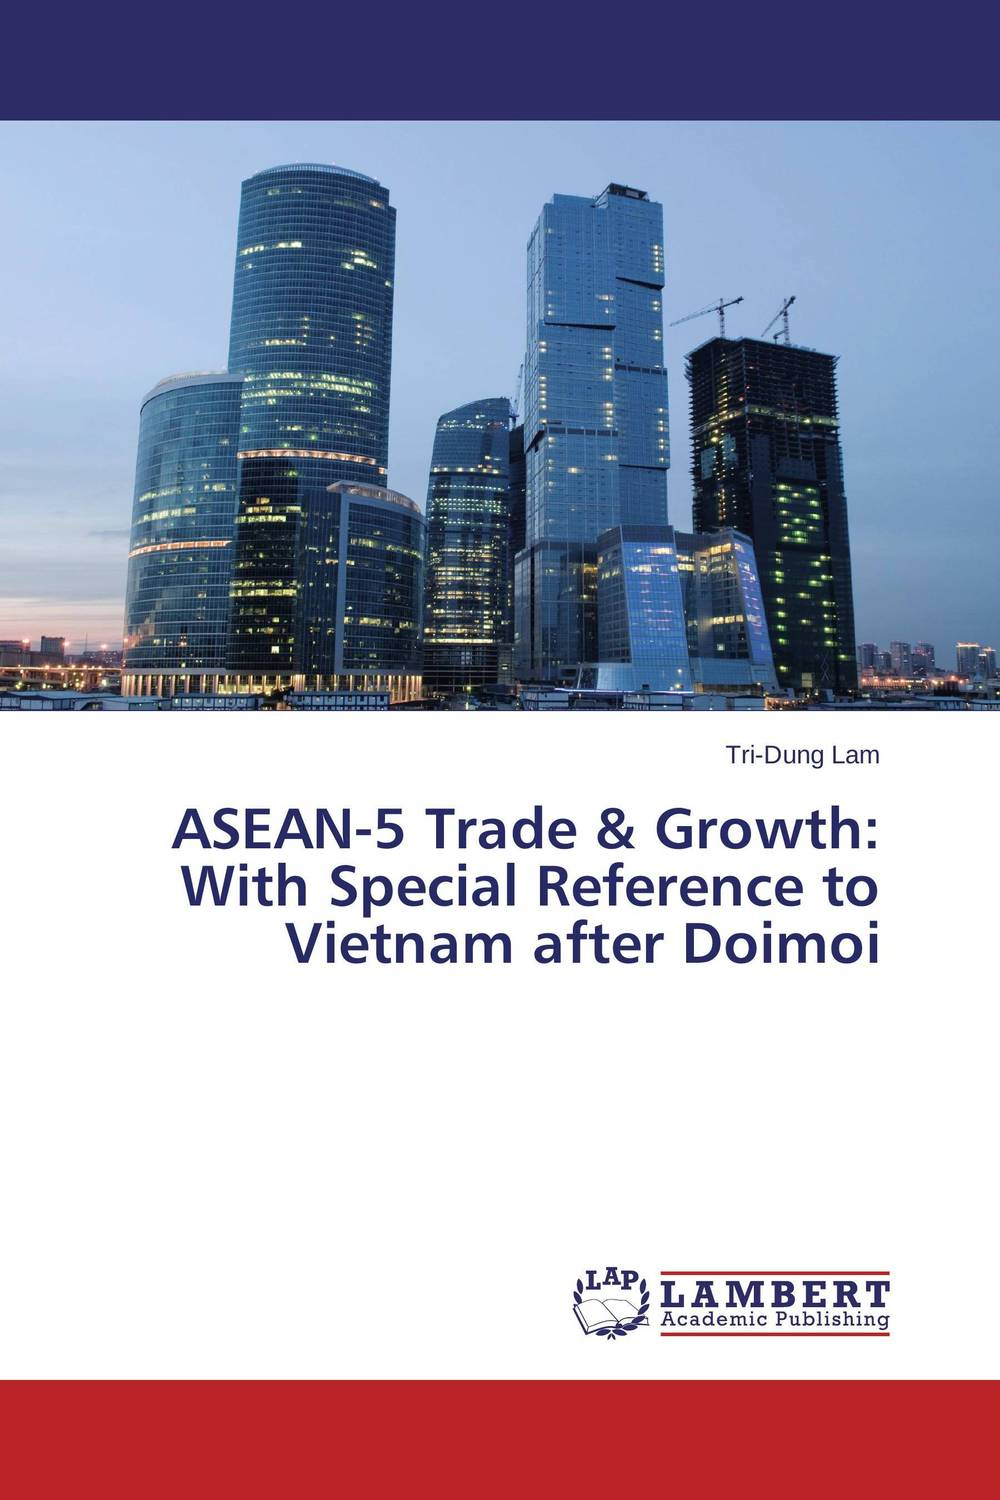 ASEAN-5 Trade & Growth: With Special Reference to Vietnam after Doimoi driven to distraction